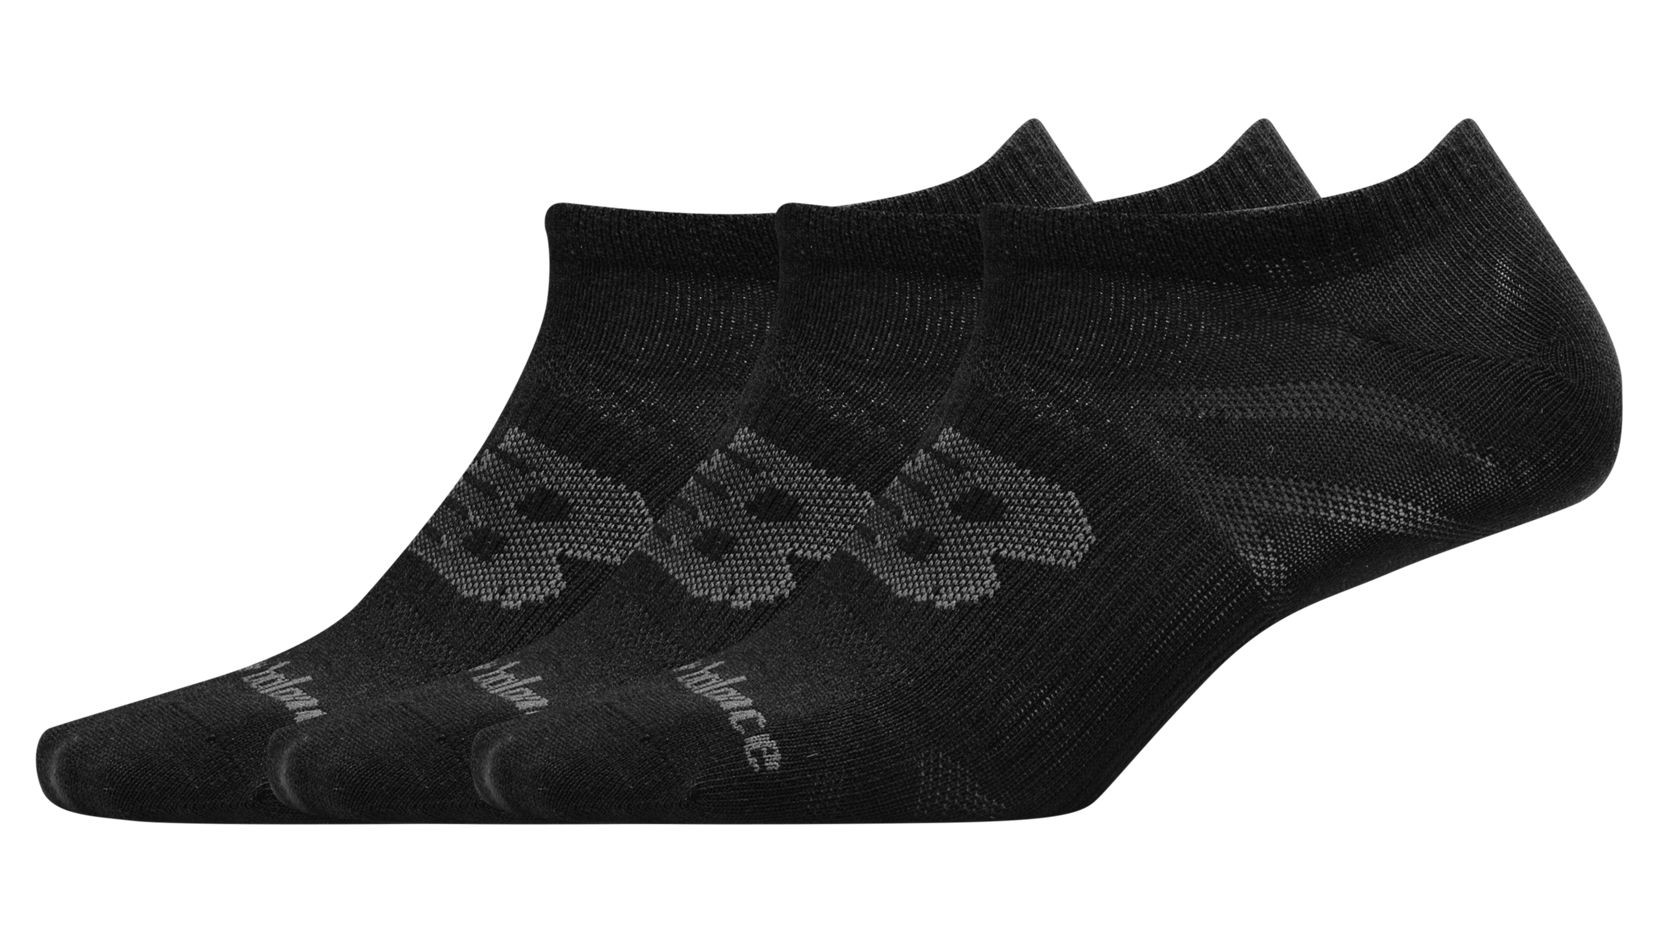 UNISEX FLAT KNIT NO SHOW SOCK 3 PAIR